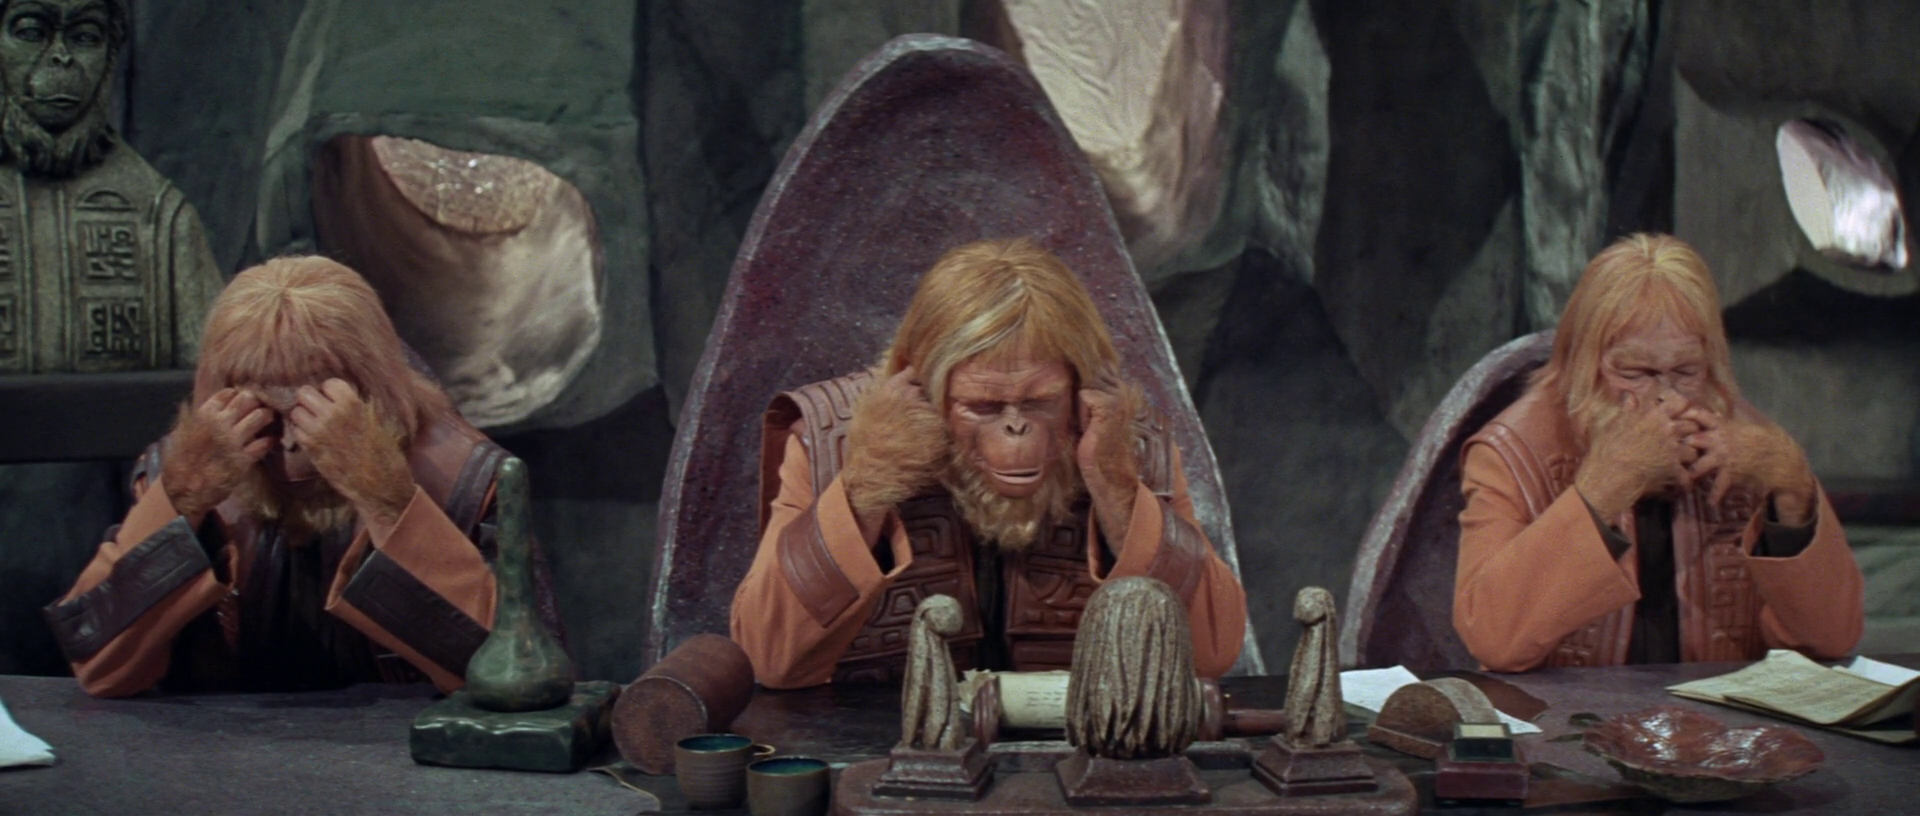 2 Planet Of The Apes 1968 Hd Wallpapers Background Images